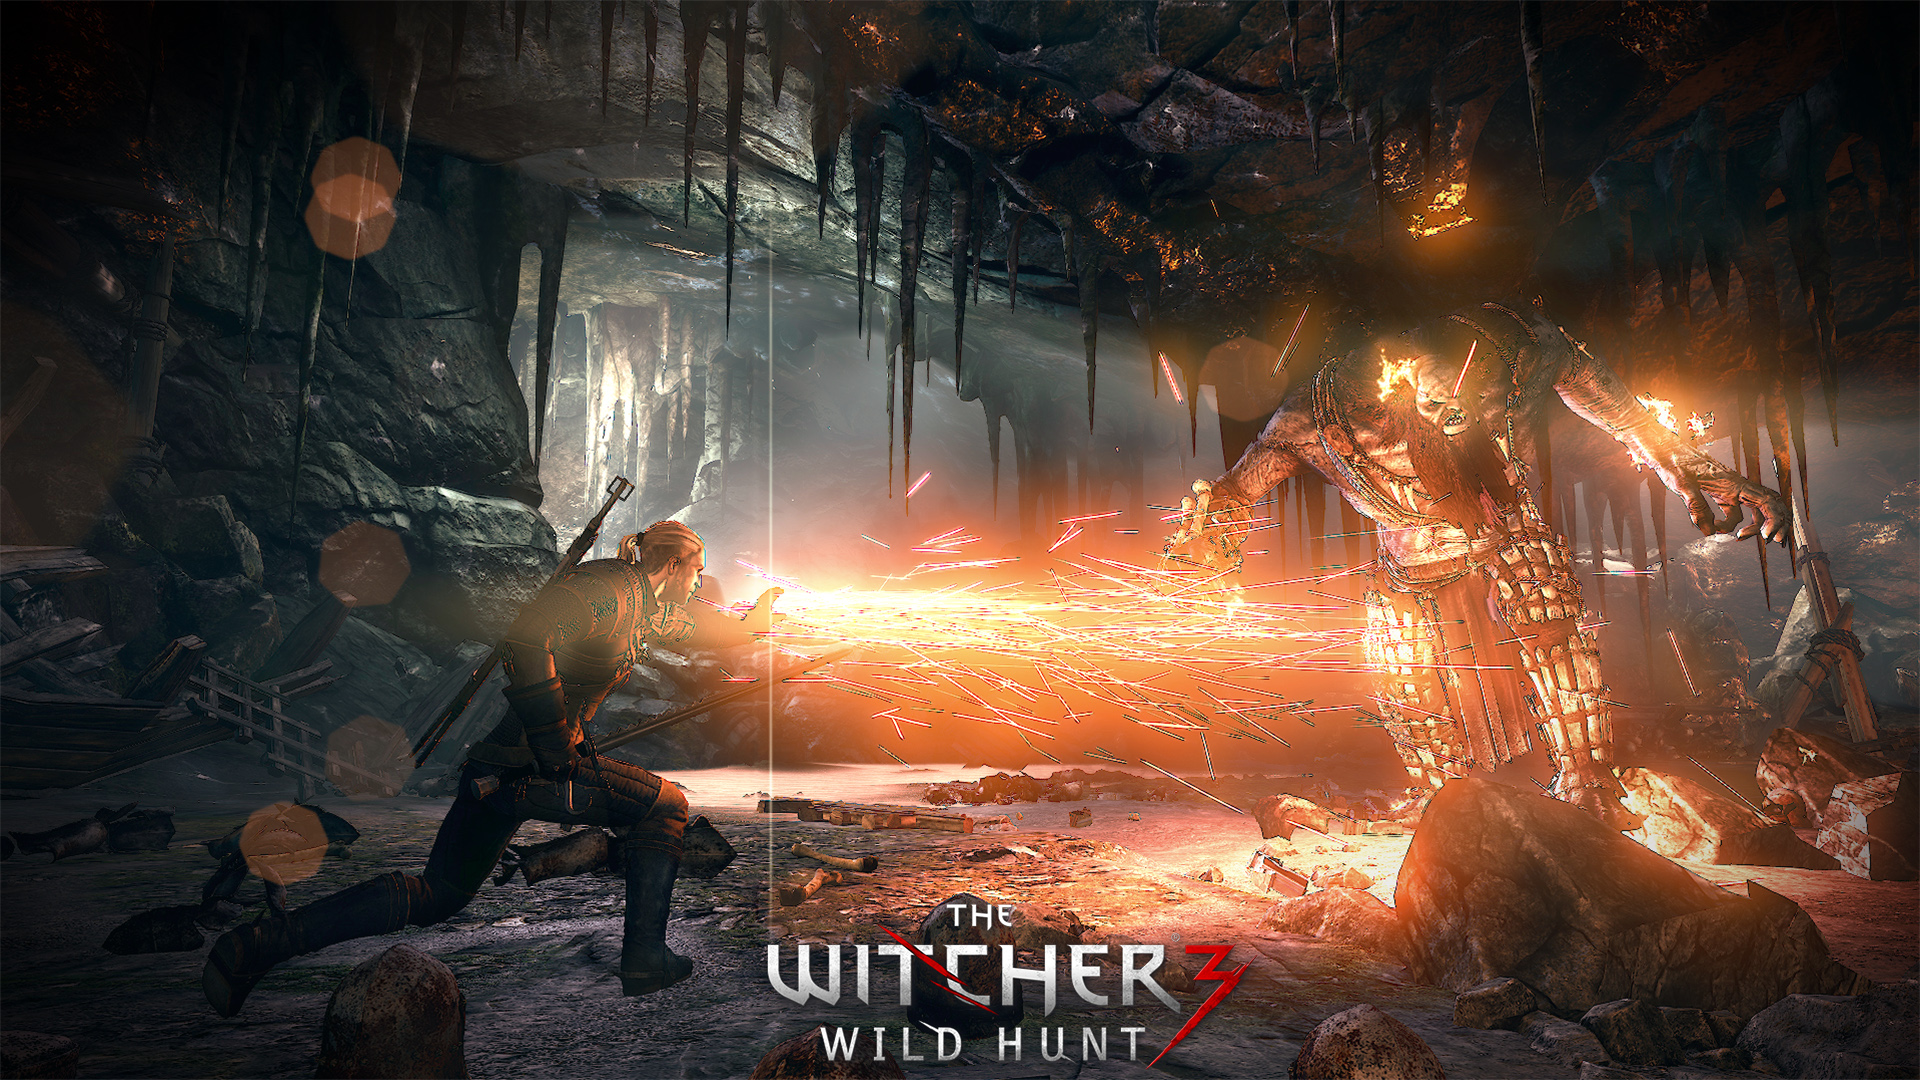 the witcher 3: wild hunt wallpapers 1920x1080 | hd wallpapers